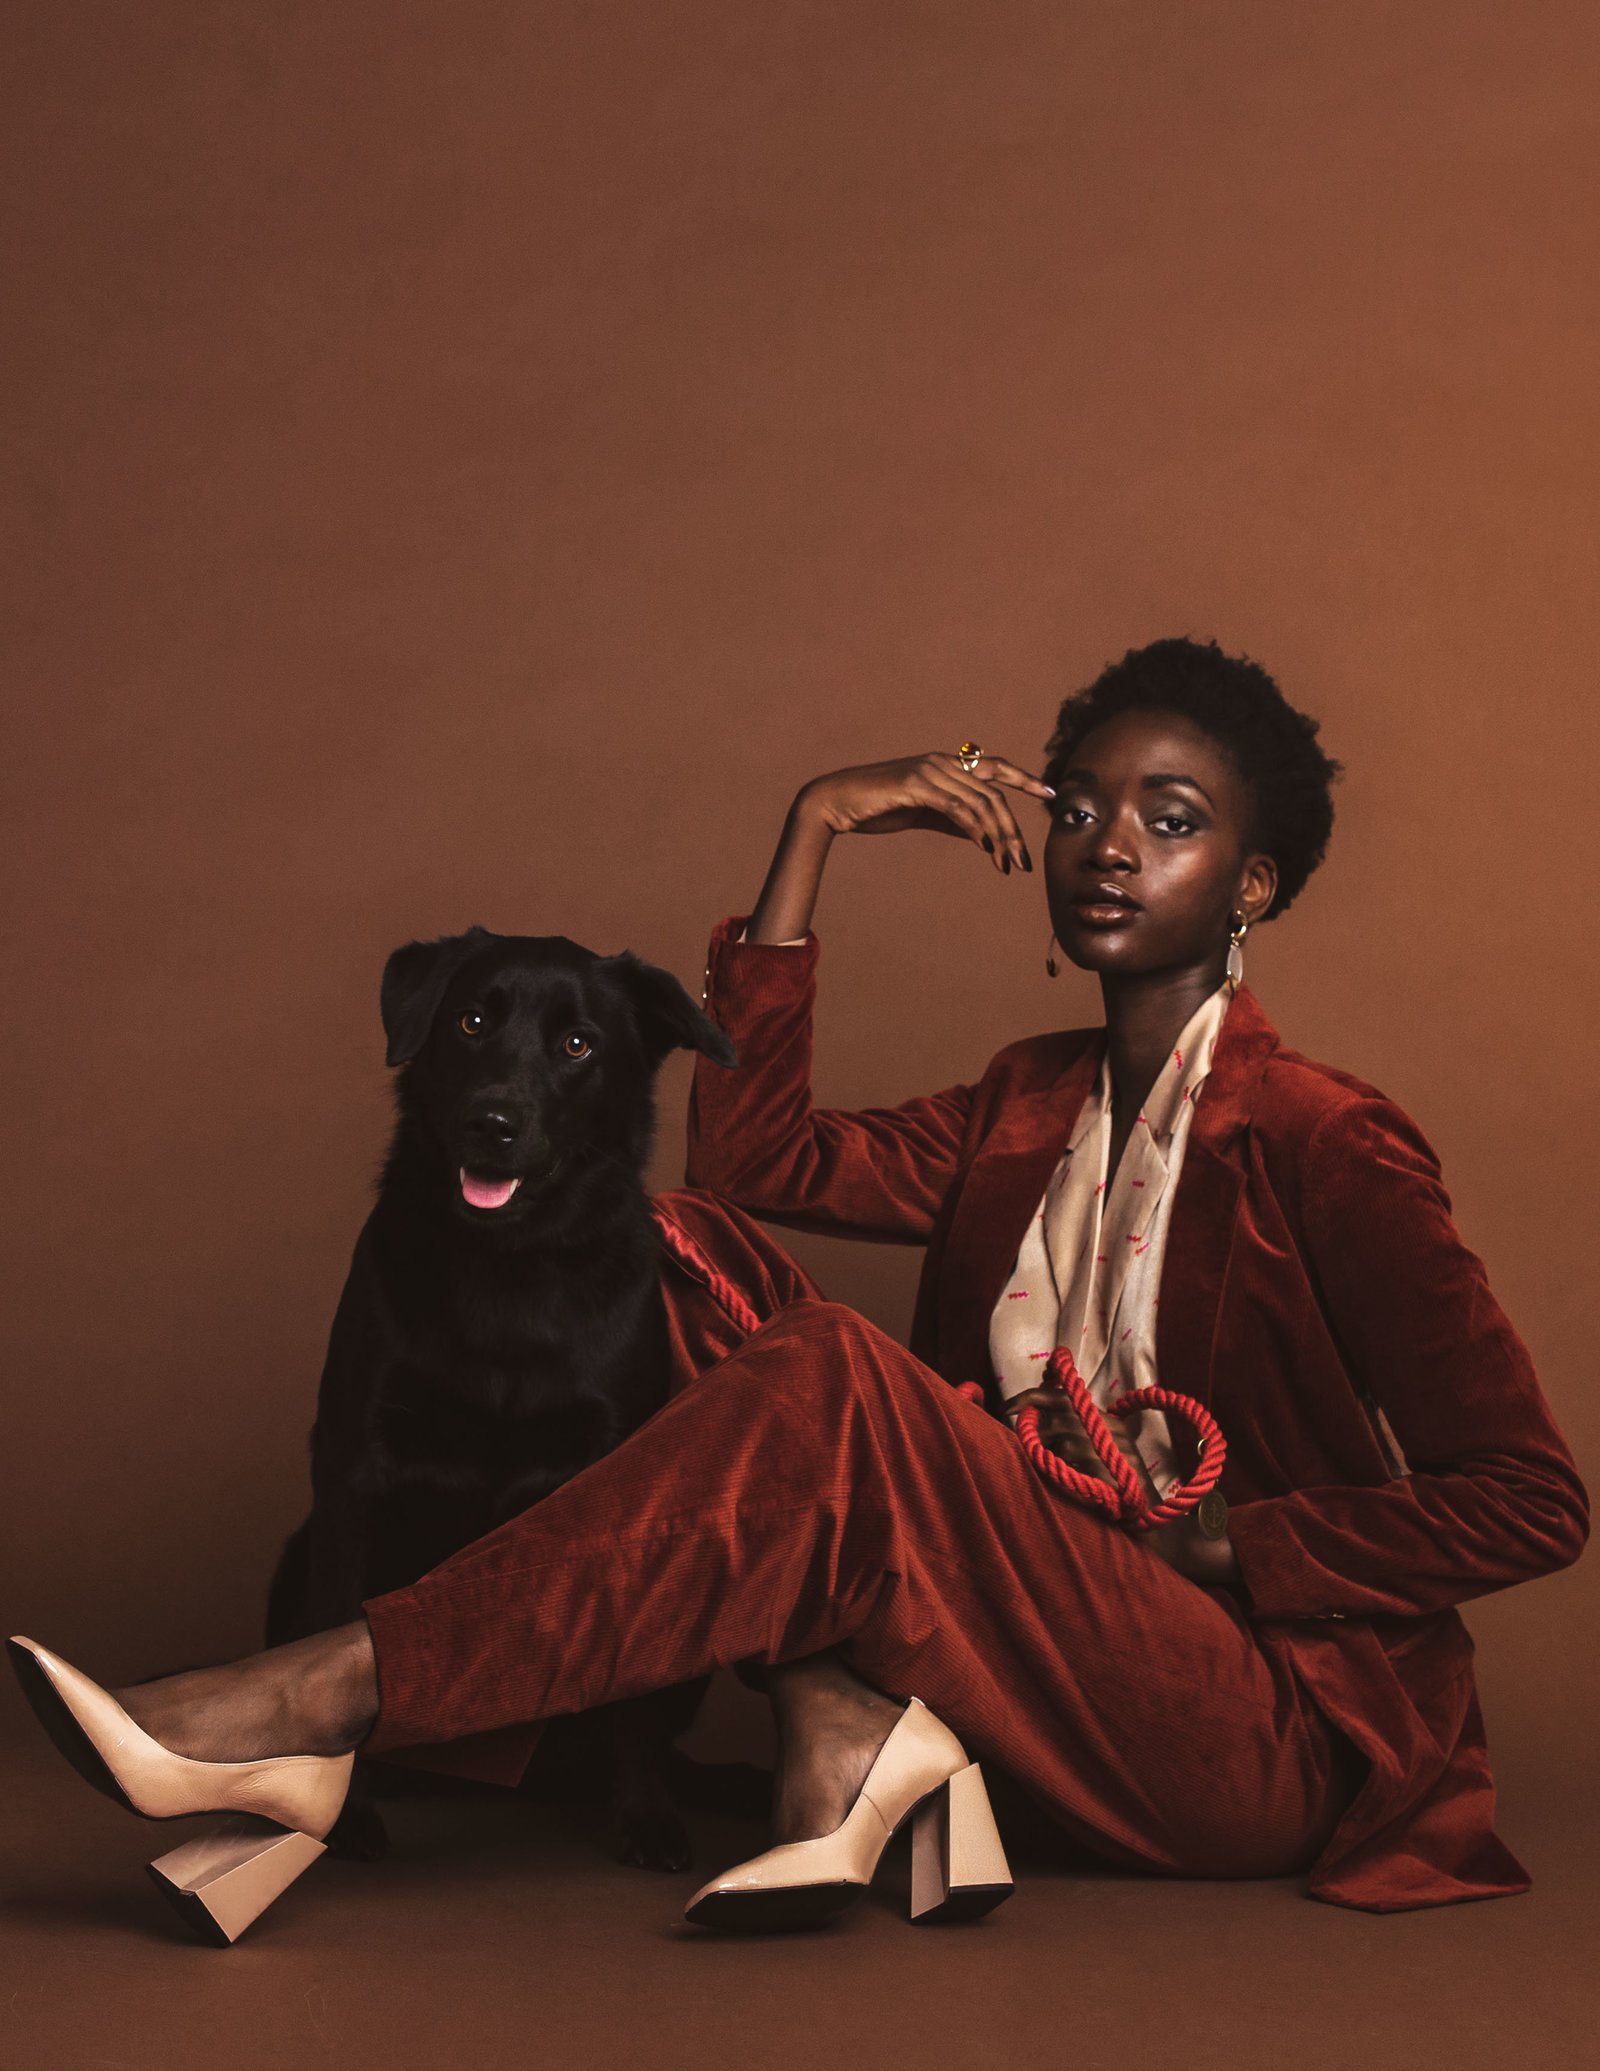 Dog-Fashion-Editorial-by-Brittany-Gawley-Photography-Westboro-Studio-1